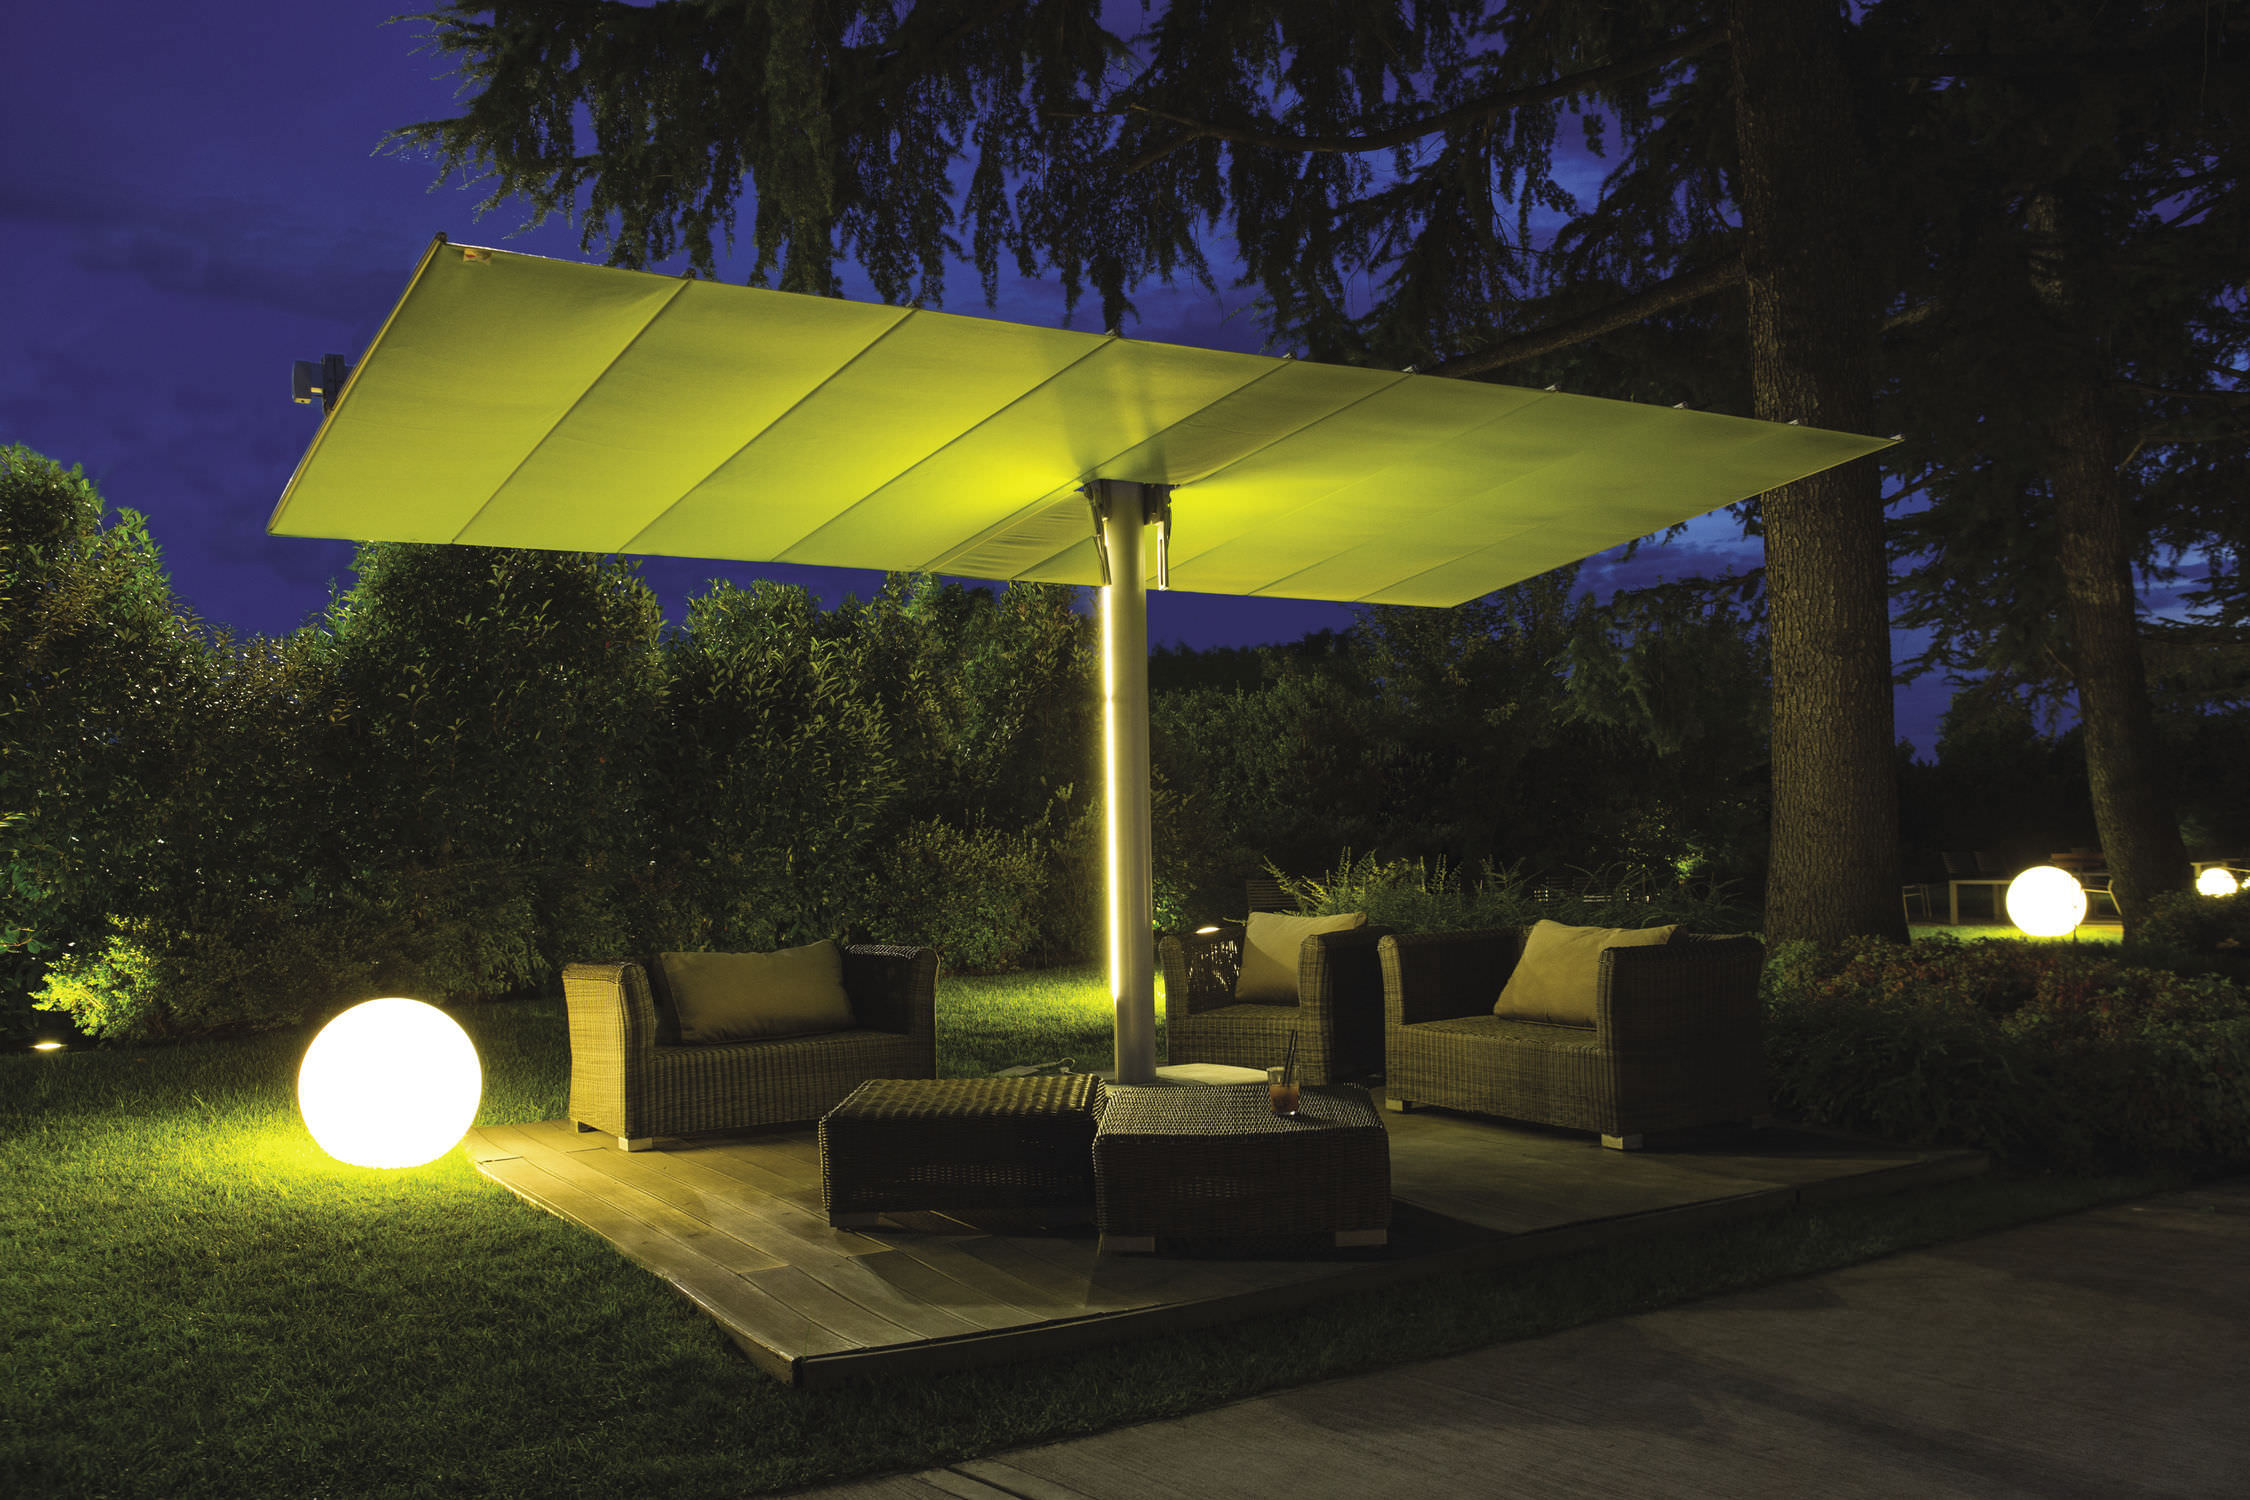 ... Contract Patio Umbrella / Fabric / Aluminum / Orientable ...